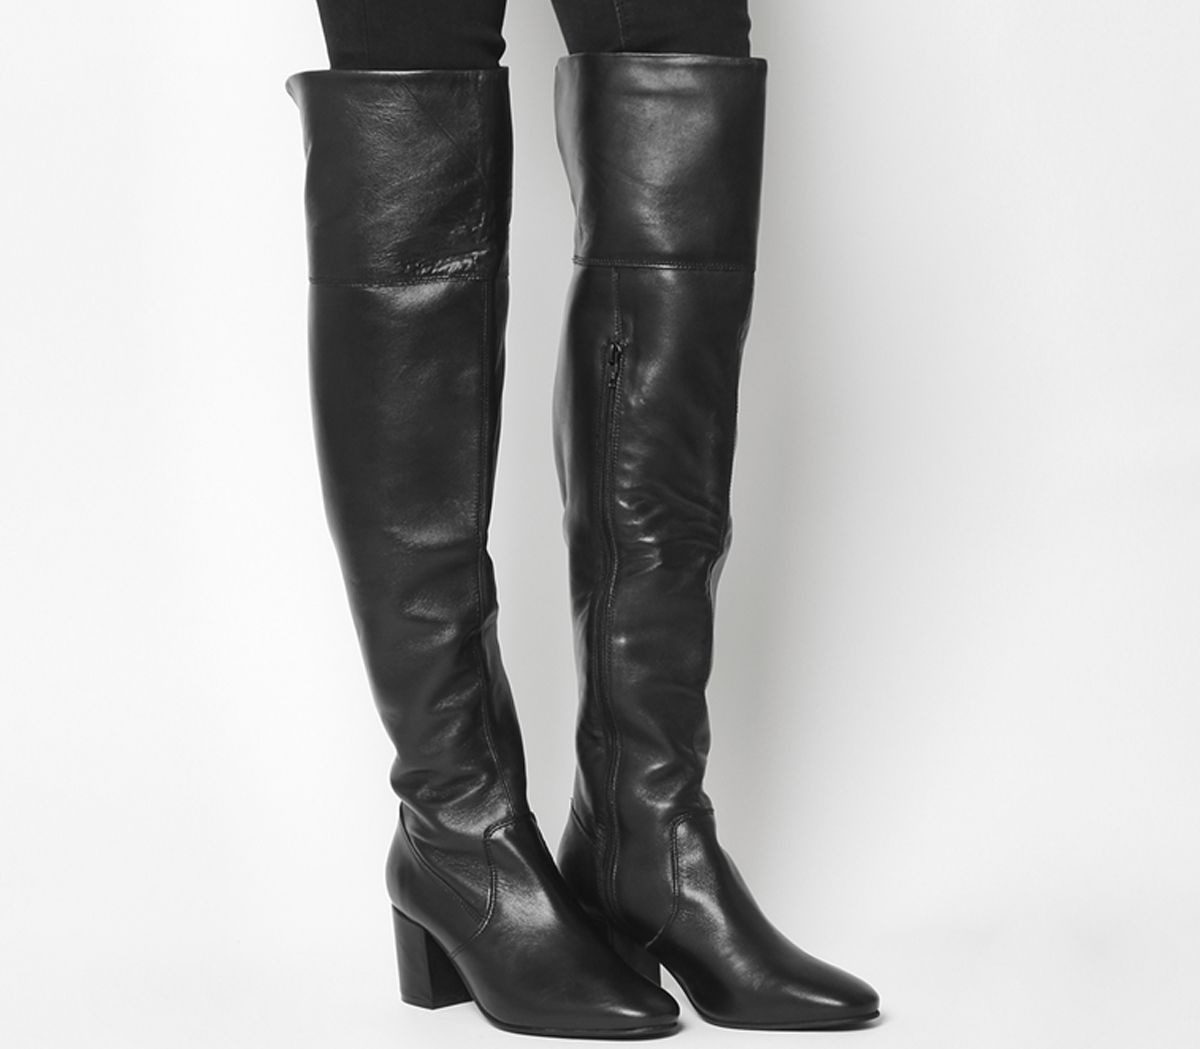 e8f6dc4b614 Office Krissy Over The Knee Boots Black Leather - Knee Boots